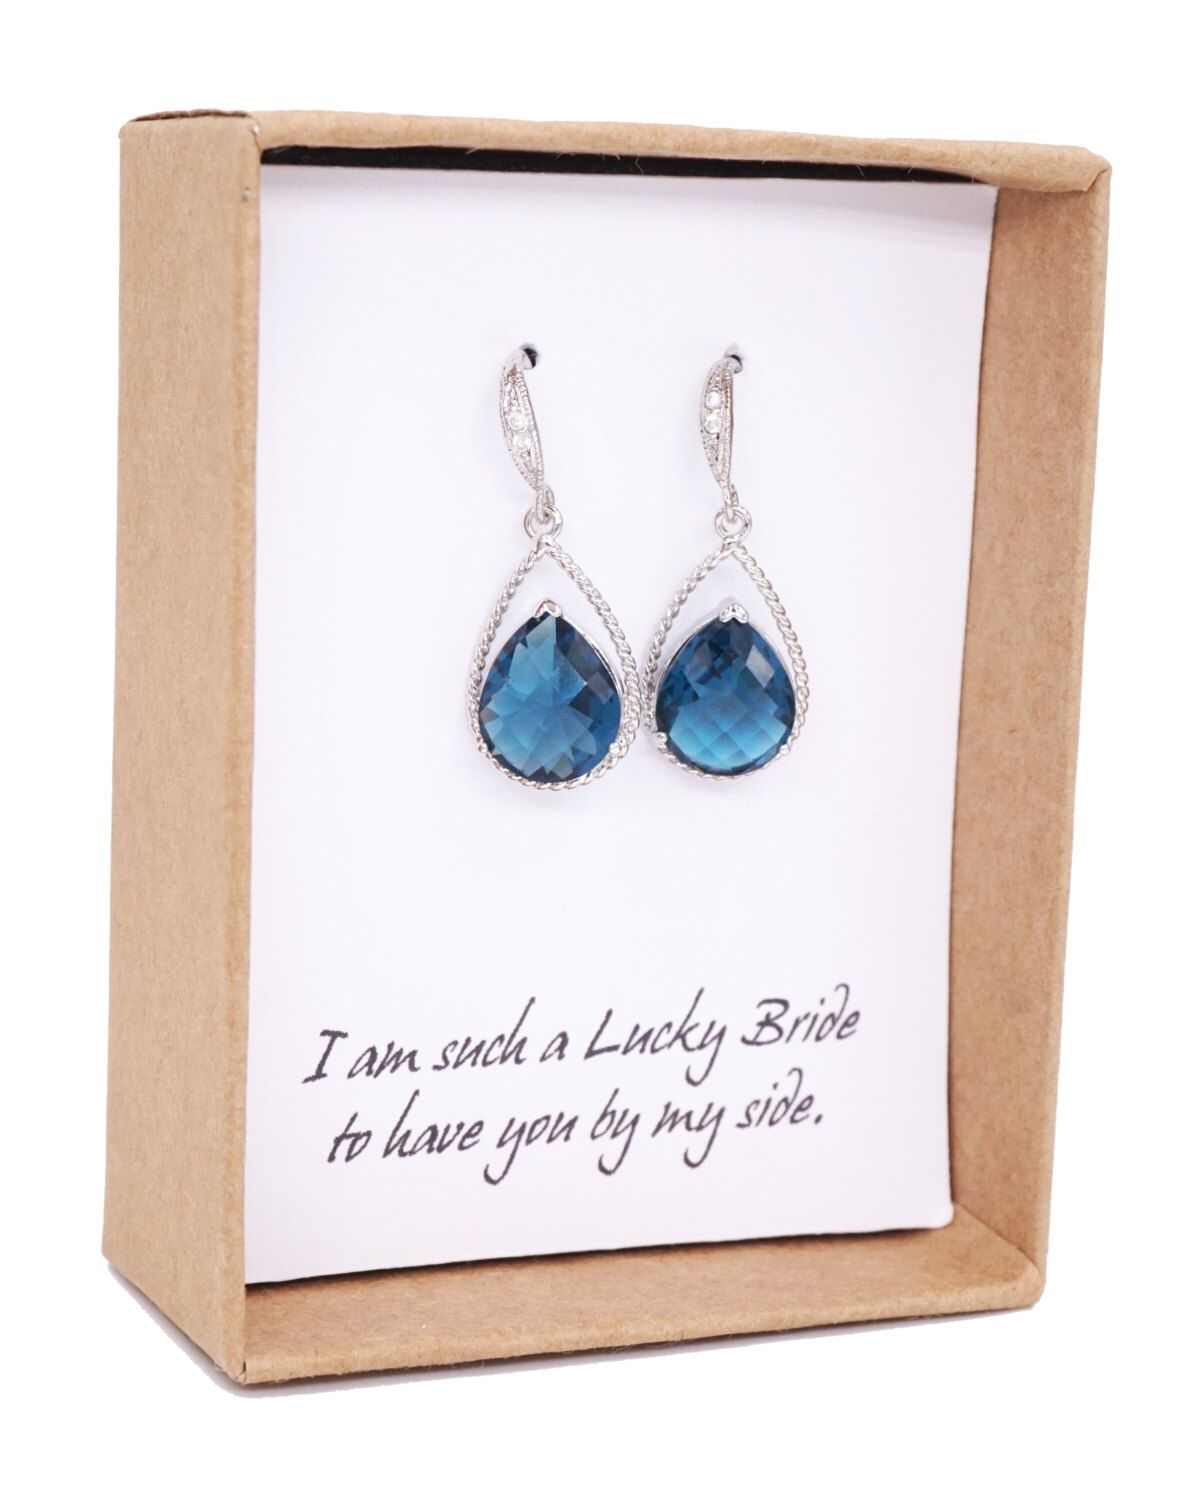 Mabel - Montana Blue Crystal Tear drops, Cubic Zirconia ear wire, gifts for her, blue wedding, Bridal Bridesmaid Earrings, Bridesmaids by GlitzAndLove on Etsy https://www.etsy.com/uk/listing/174070772/mabel-montana-blue-crystal-tear-drops